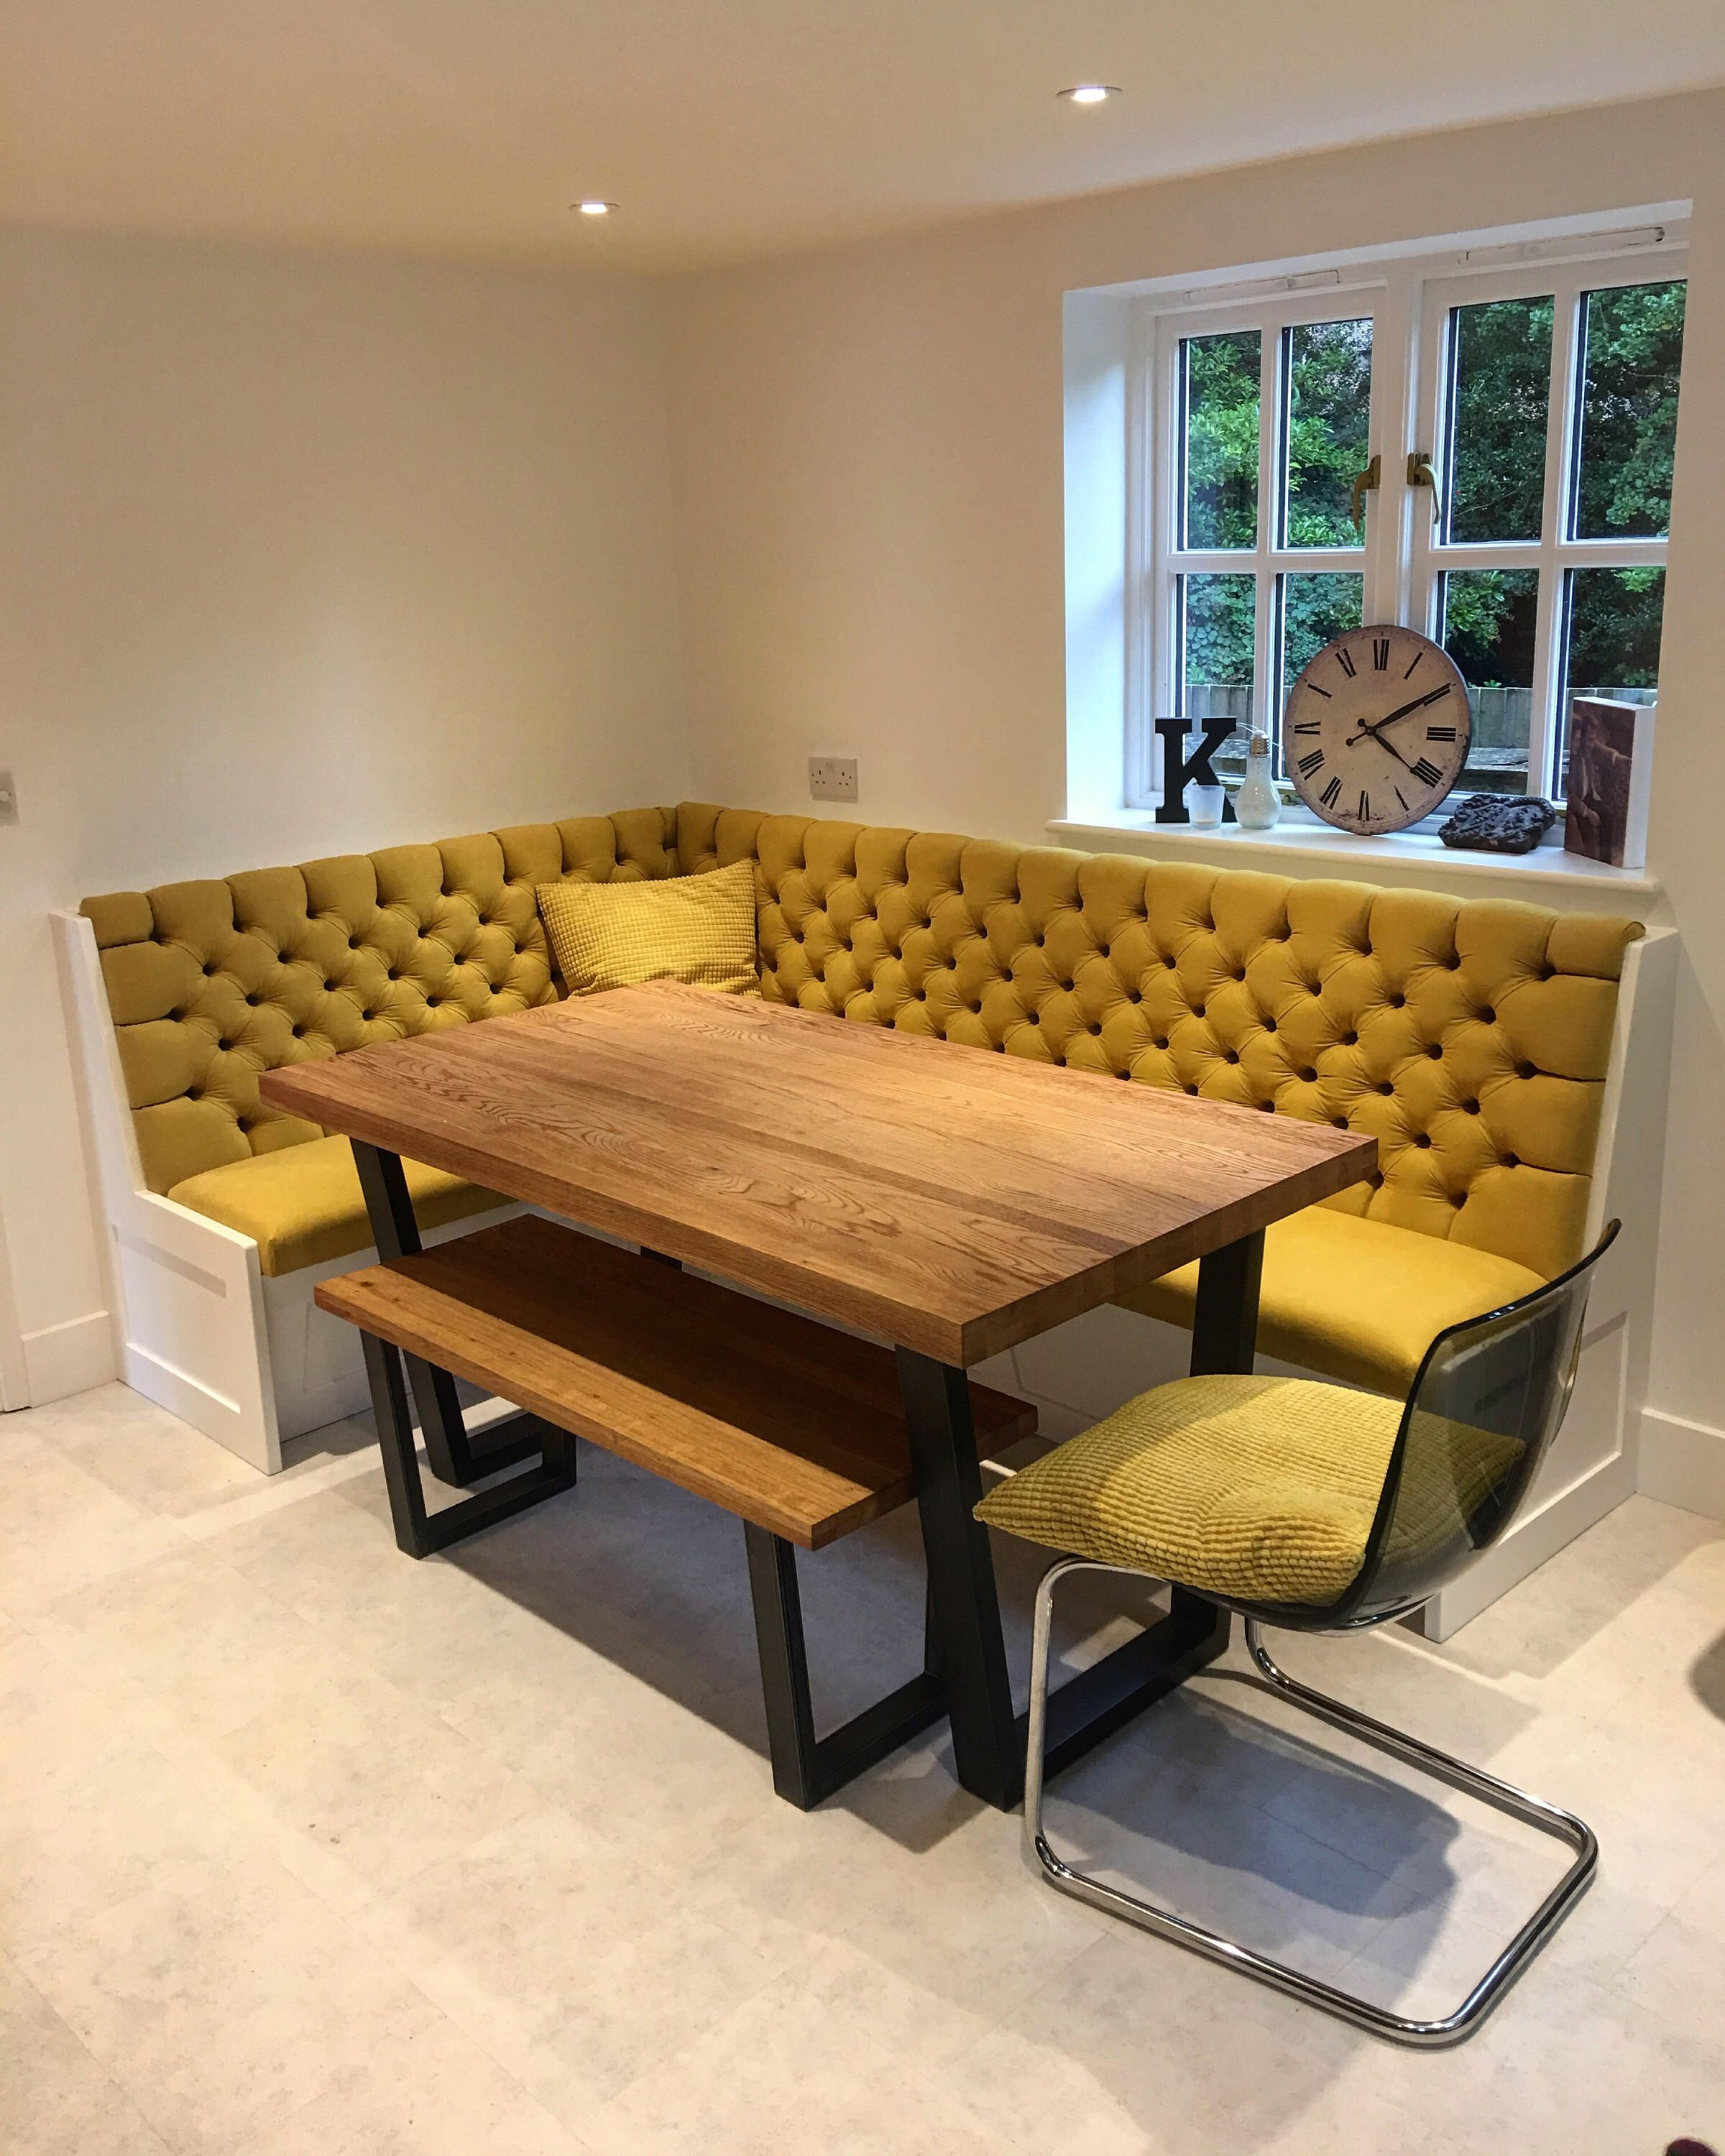 Bespoke Banquette Seating Deep Buttoned Undercover Storage In